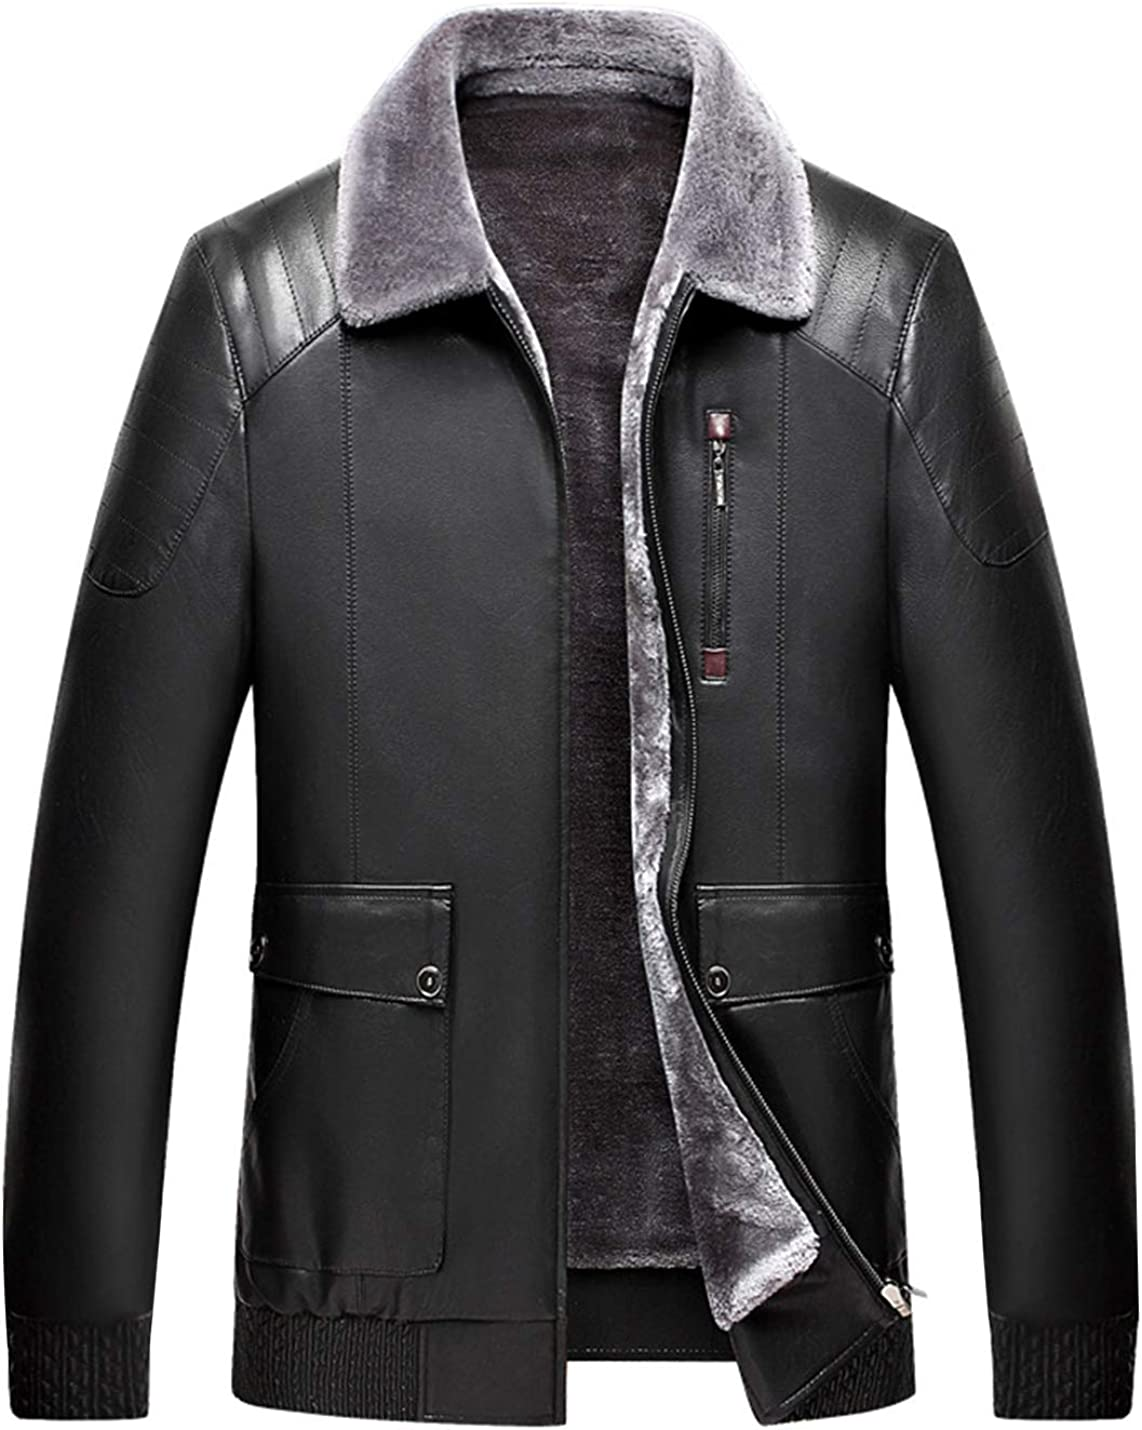 Springrain Men's Warm Front Zip-UP PU Leather Jacket Outerwear with Fleece Lining